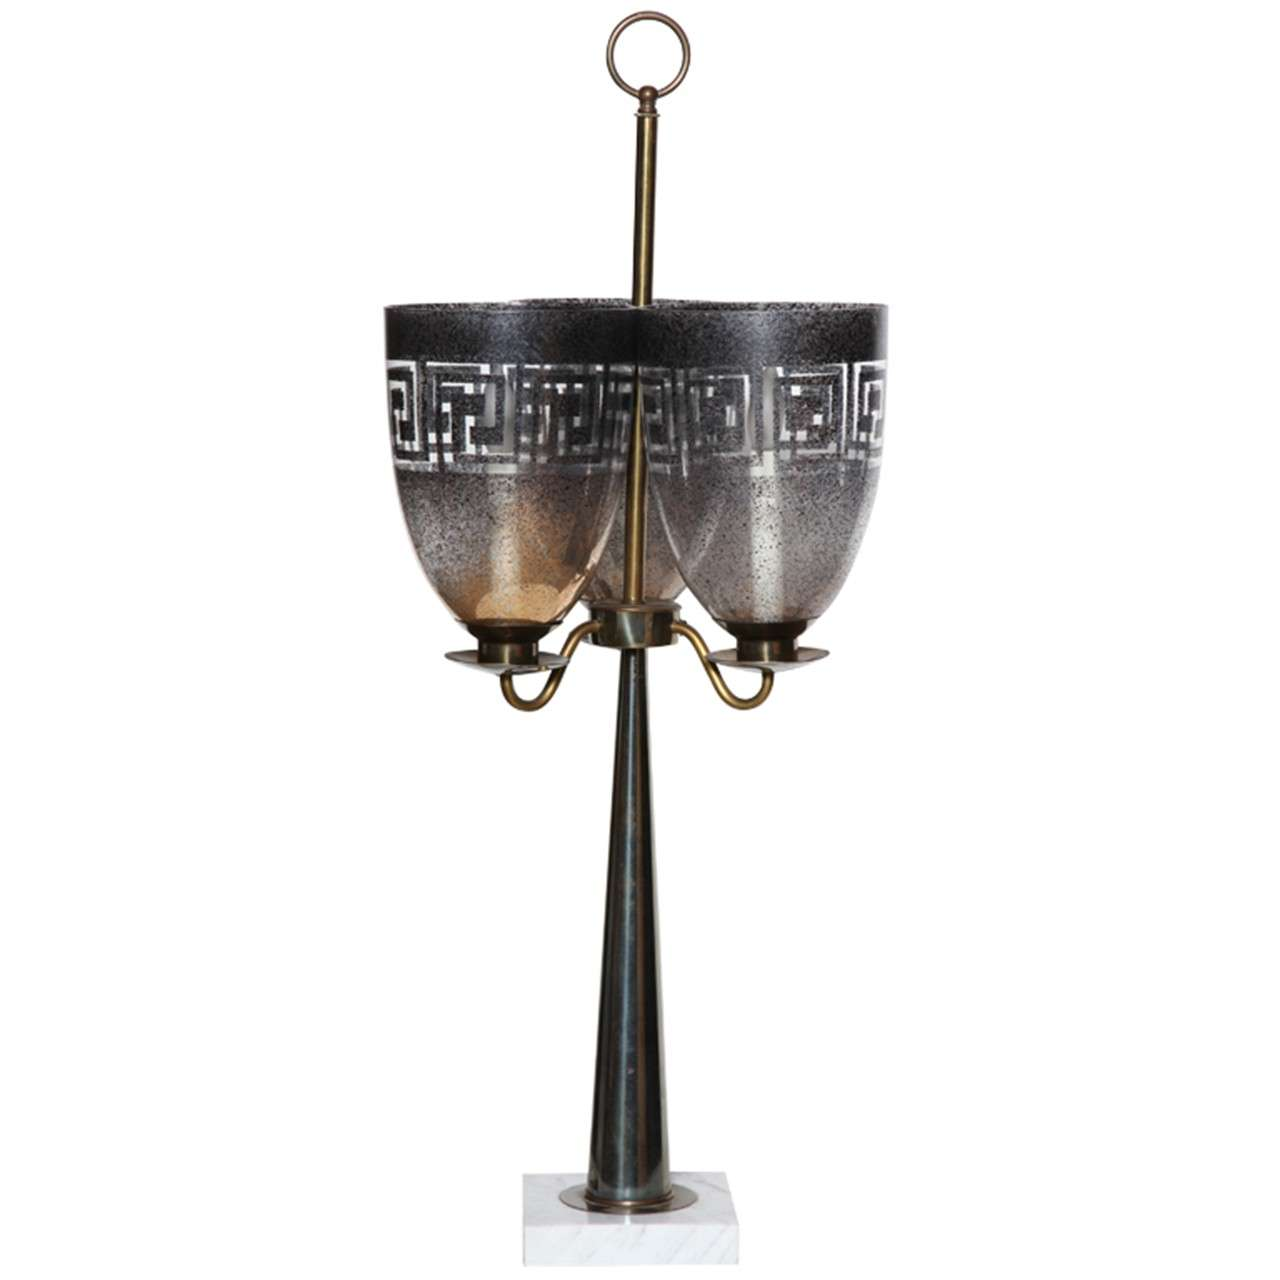 Stiffel Triple Shade Greek Key Hurricane Lamp with Brass and Marble, 1950s